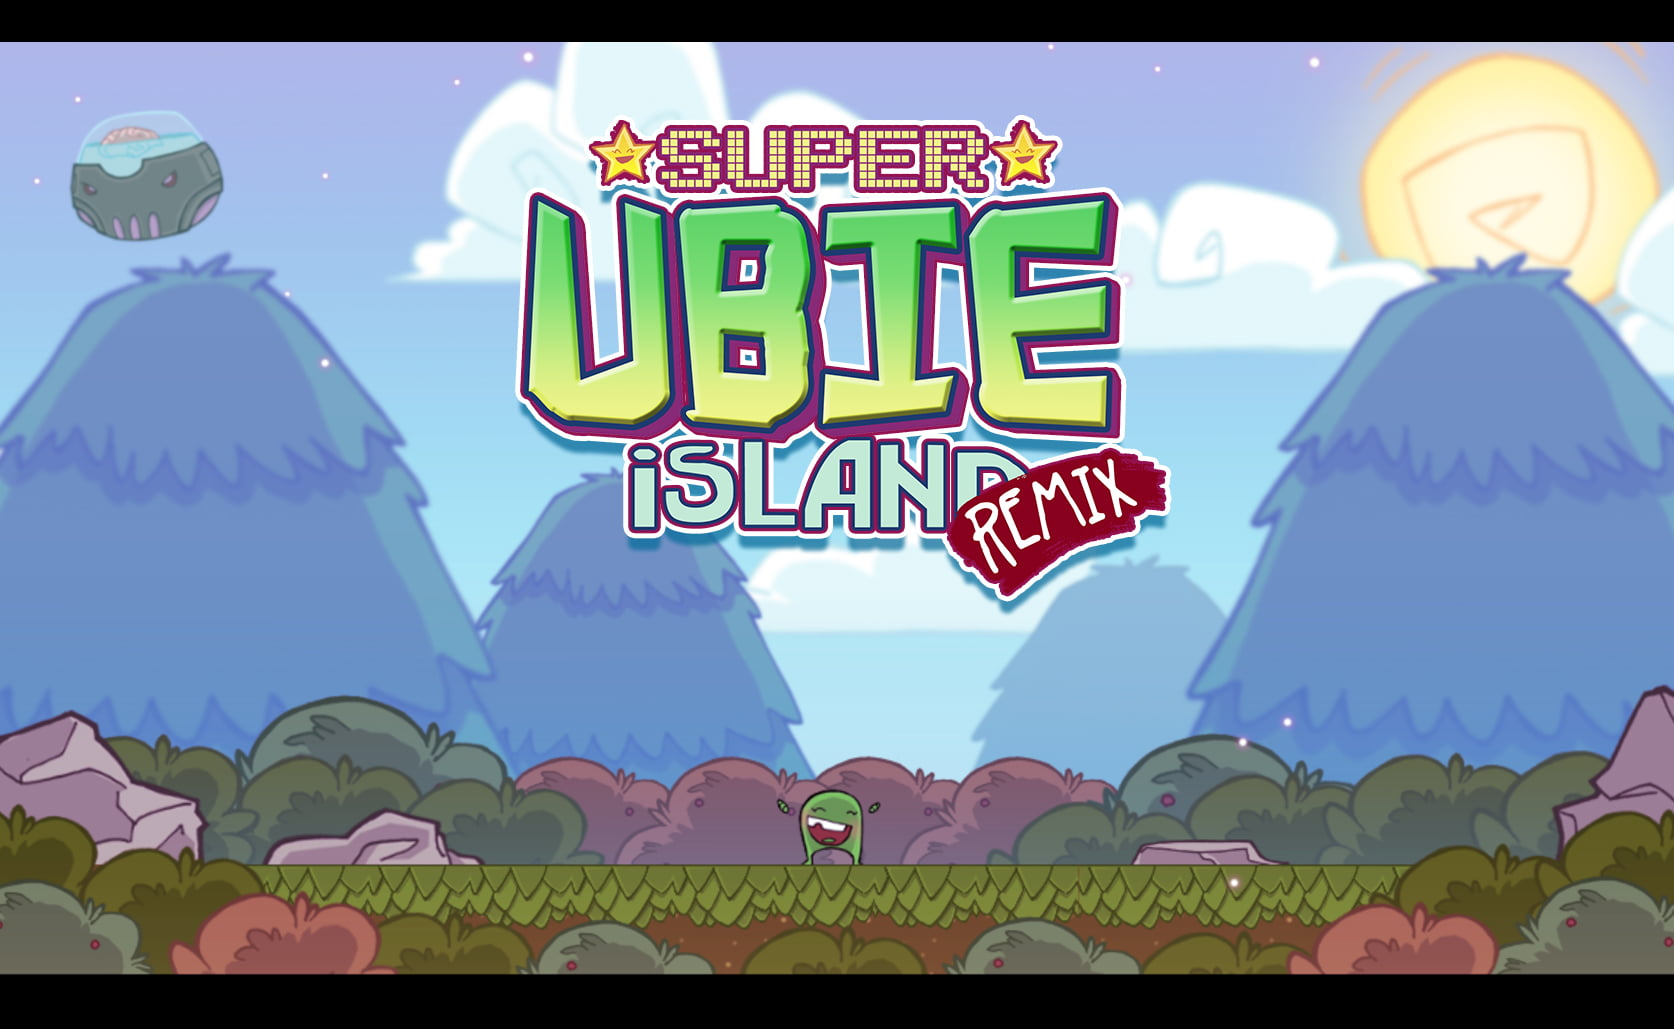 Photo of We Must Save the Bees? Bees! – Super Ubie Island Remix